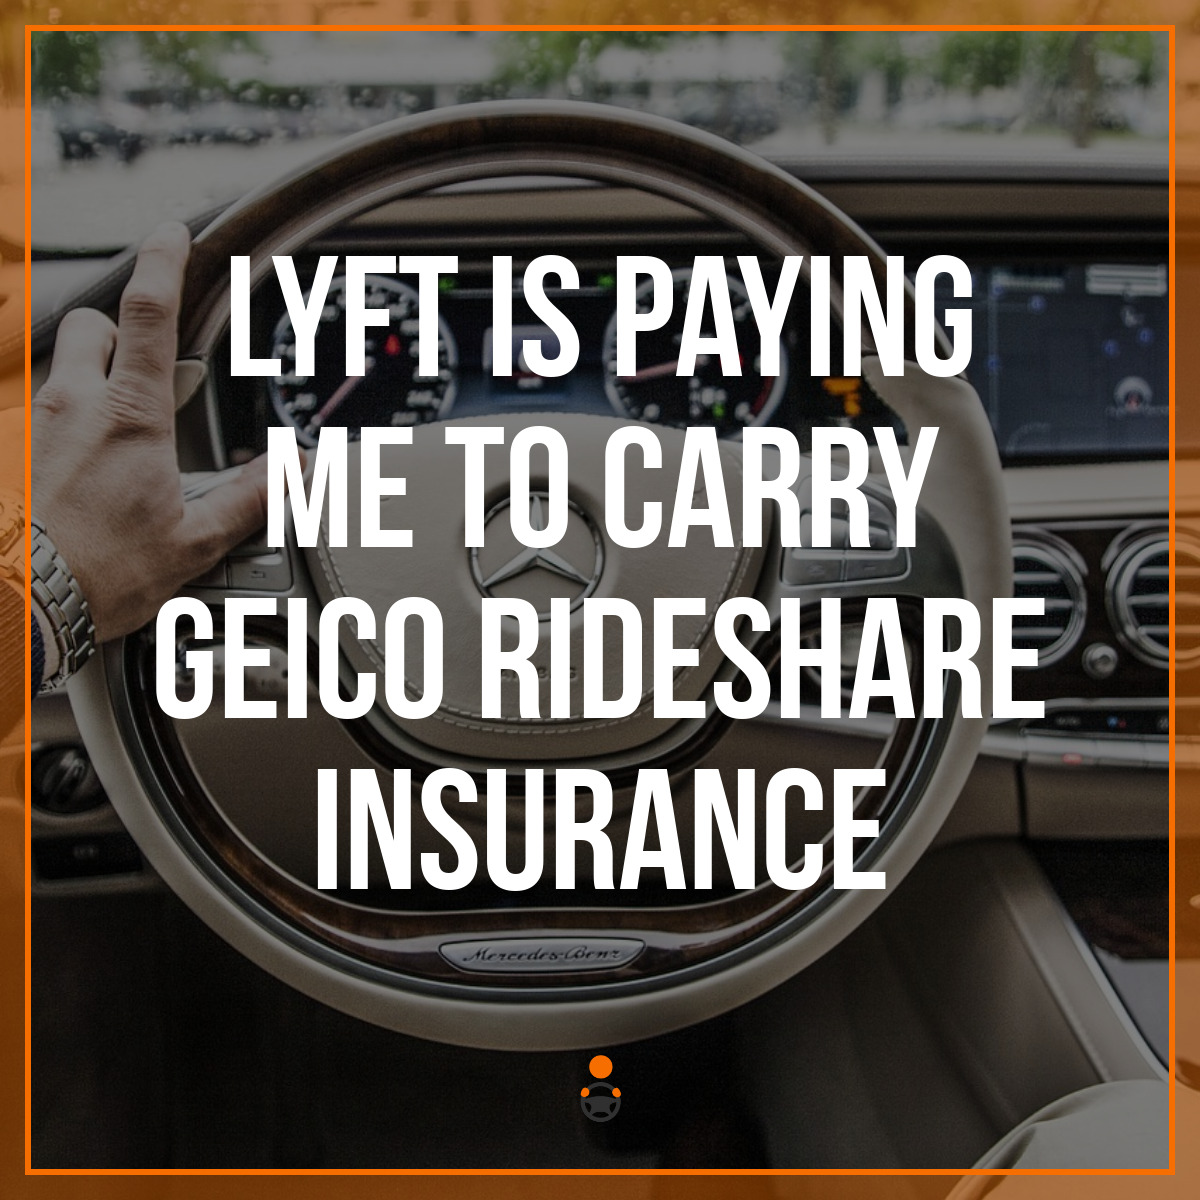 Lyft Is Paying Me To Carry Geico Rideshare Insurance